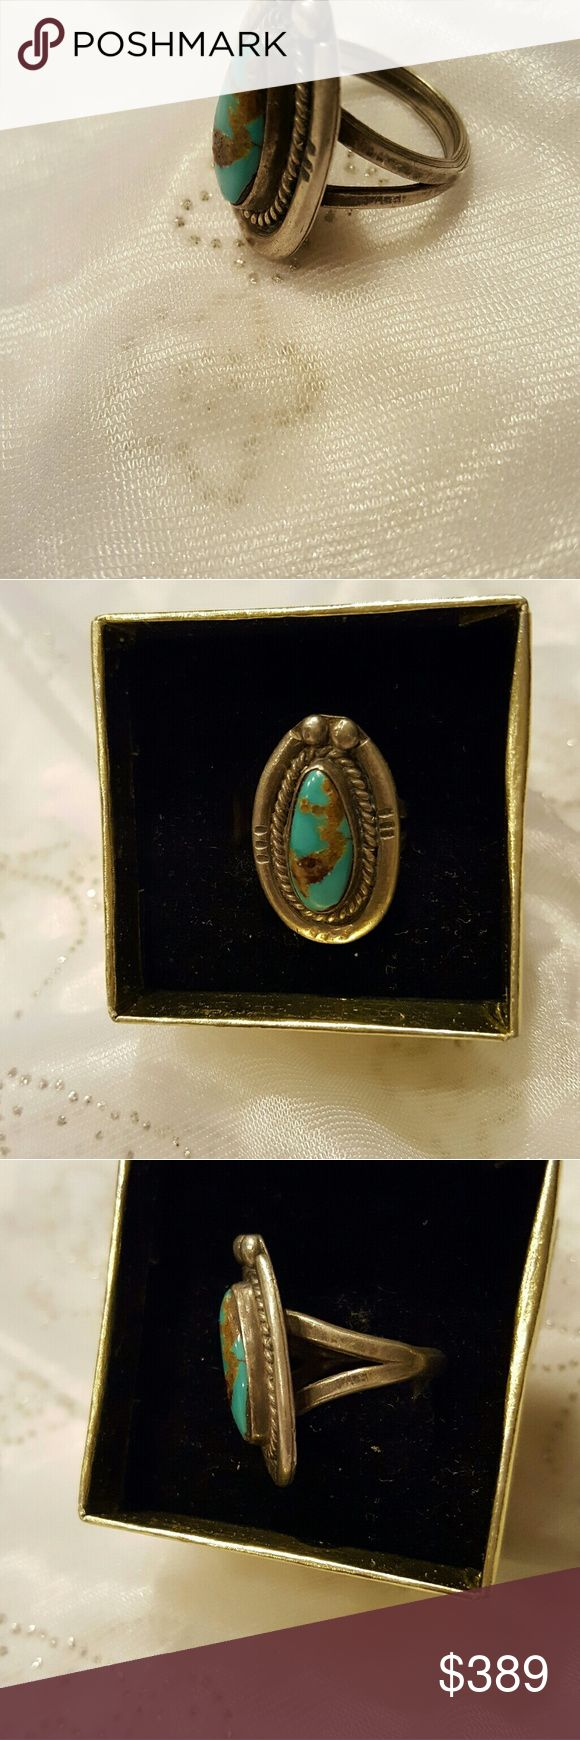 Vintage sand cast Navajo turquoise and silver ring beautiful Copper tone, gold, and brown natural colors in the stone set in a gorgeous decorative silver band Jewelry Rings